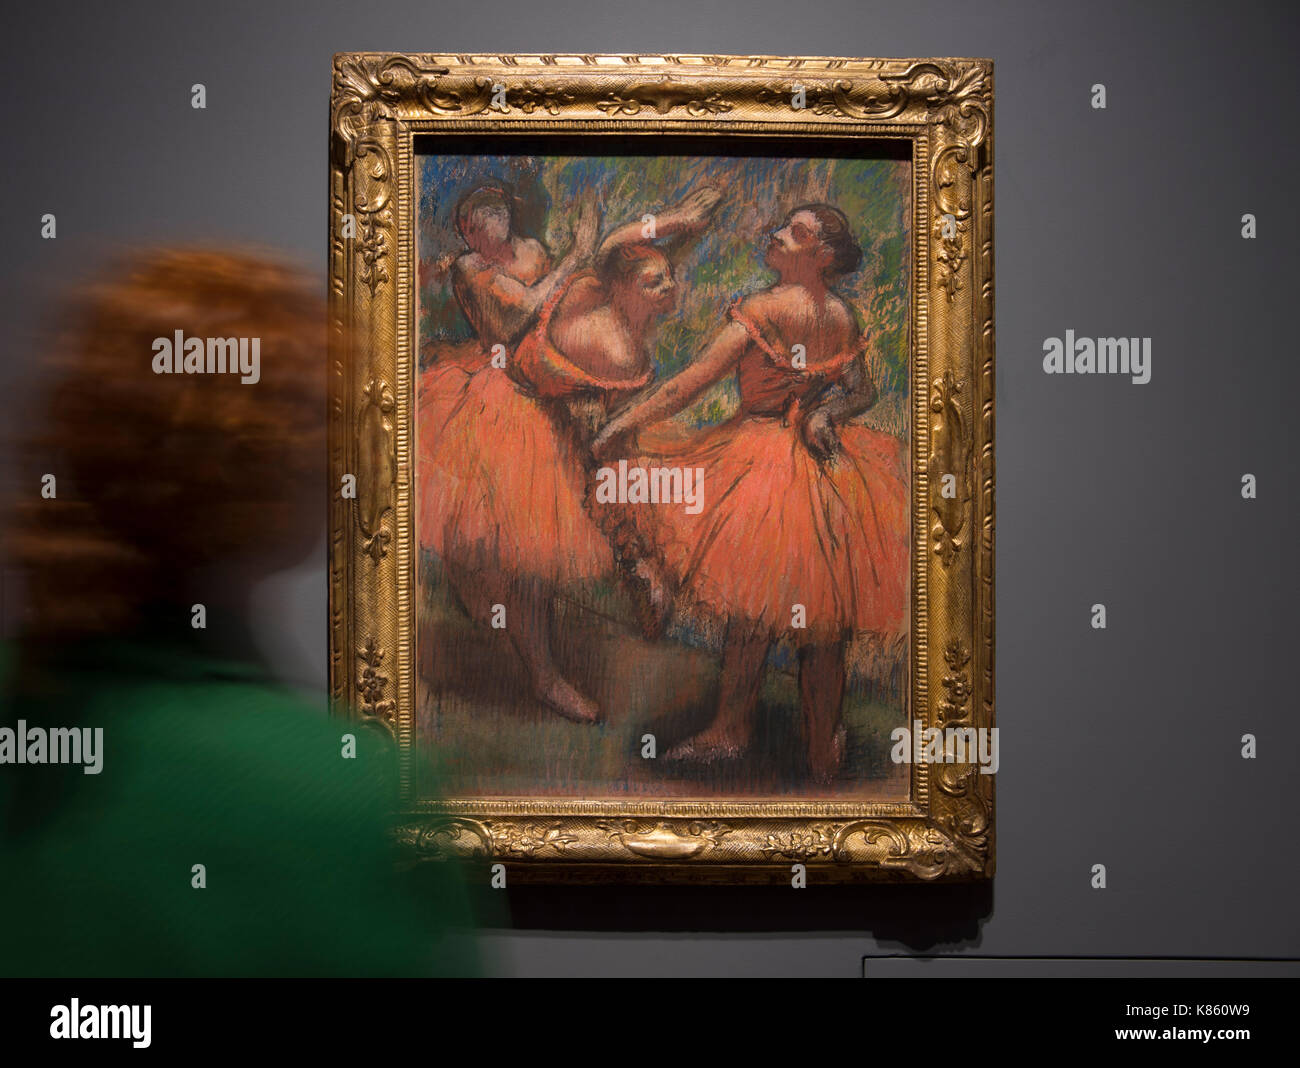 National Gallery, London, UK. 18th Sep, 2017. Degas artworks from the Burrell Collection in Glasgow go on display at the National Gallery from 20 September 2017 - 7 May 2018. Shipping magnate Sir William Burrell gifted his large collection of art, including one of the finest collections of Degas pastels in the world, to the City of Glasgow in 1944. Hilaire-Germain-Edgar Degas. Photograph: The Red Ballet Skirts, about 1900. The Burrell Collection, Glasgow. Glasgow Museums Collection. Viewed by a member of Gallery staff. Credit: Malcolm Park/Alamy Live News. - Stock Image